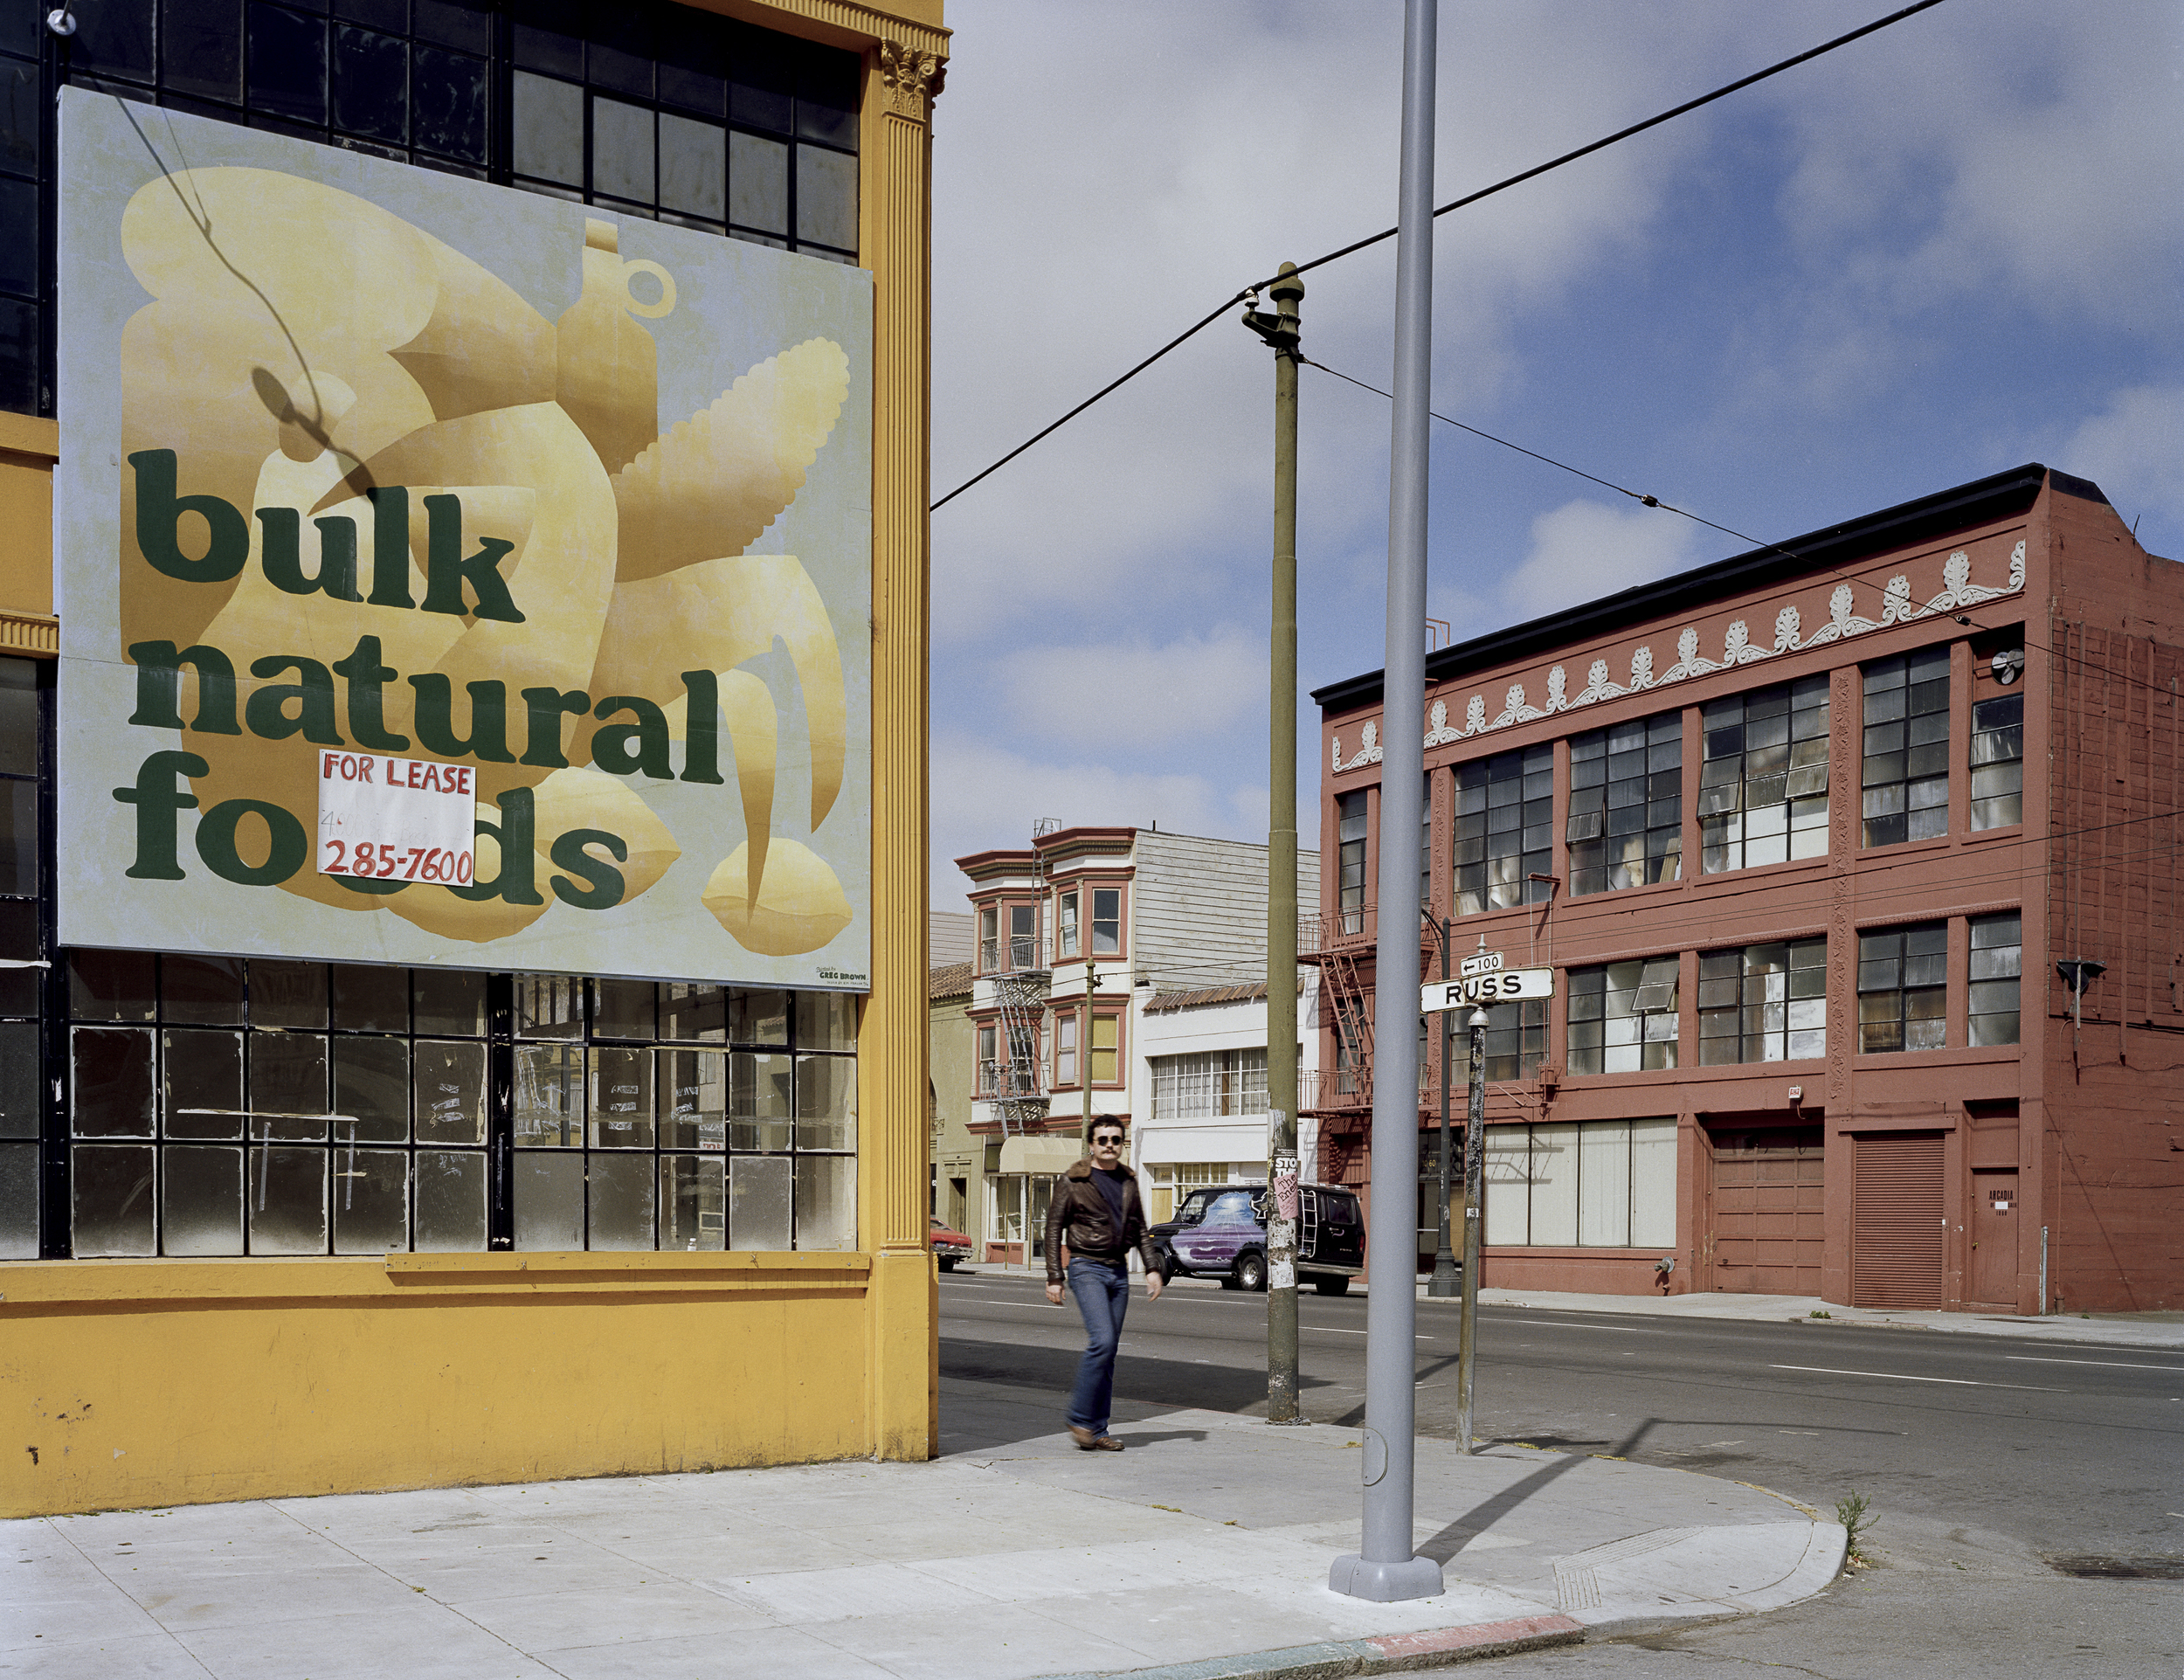 Bulk Natural Foods, Russ at Howard Street, 1980 Archival Pigment Print, 2016 16 x 20 inches, edition of 5 20 x 24 inches, edition of 2 30 x 40 inches, edition of 2